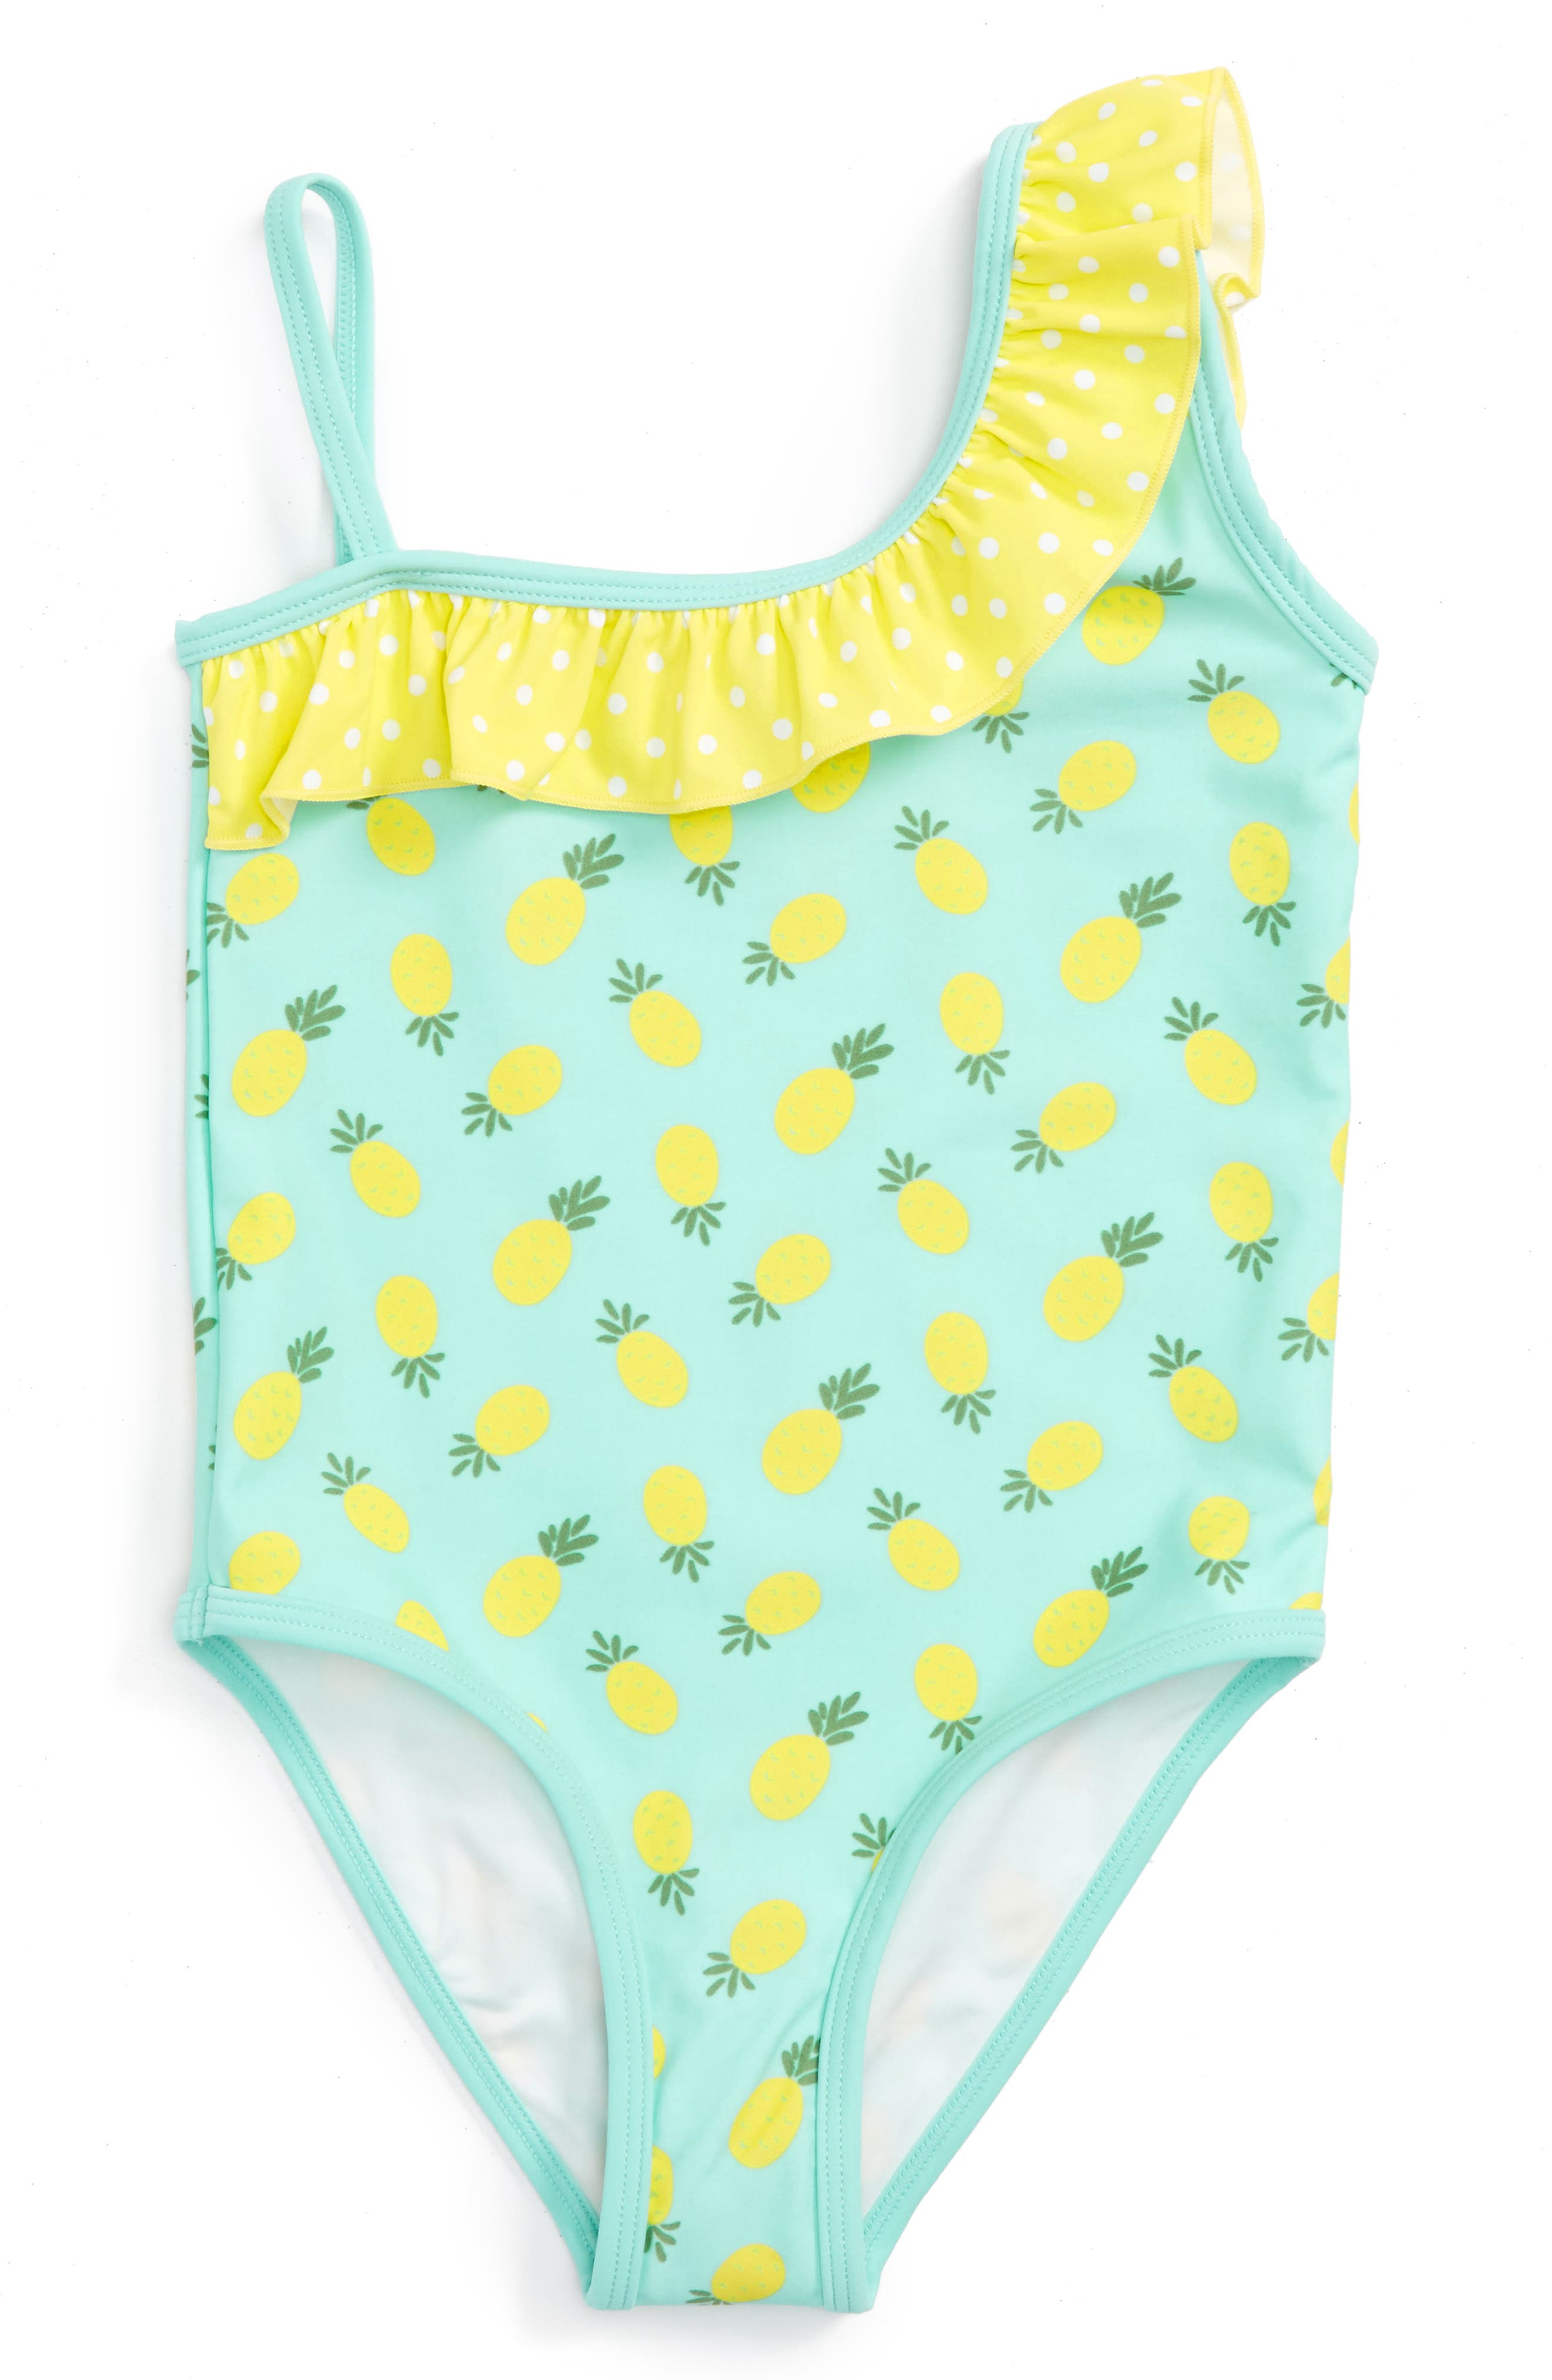 Pineapple Ruffle One-Piece Swimsuit,                             Main thumbnail 1, color,                             Teal Angel Pineapples